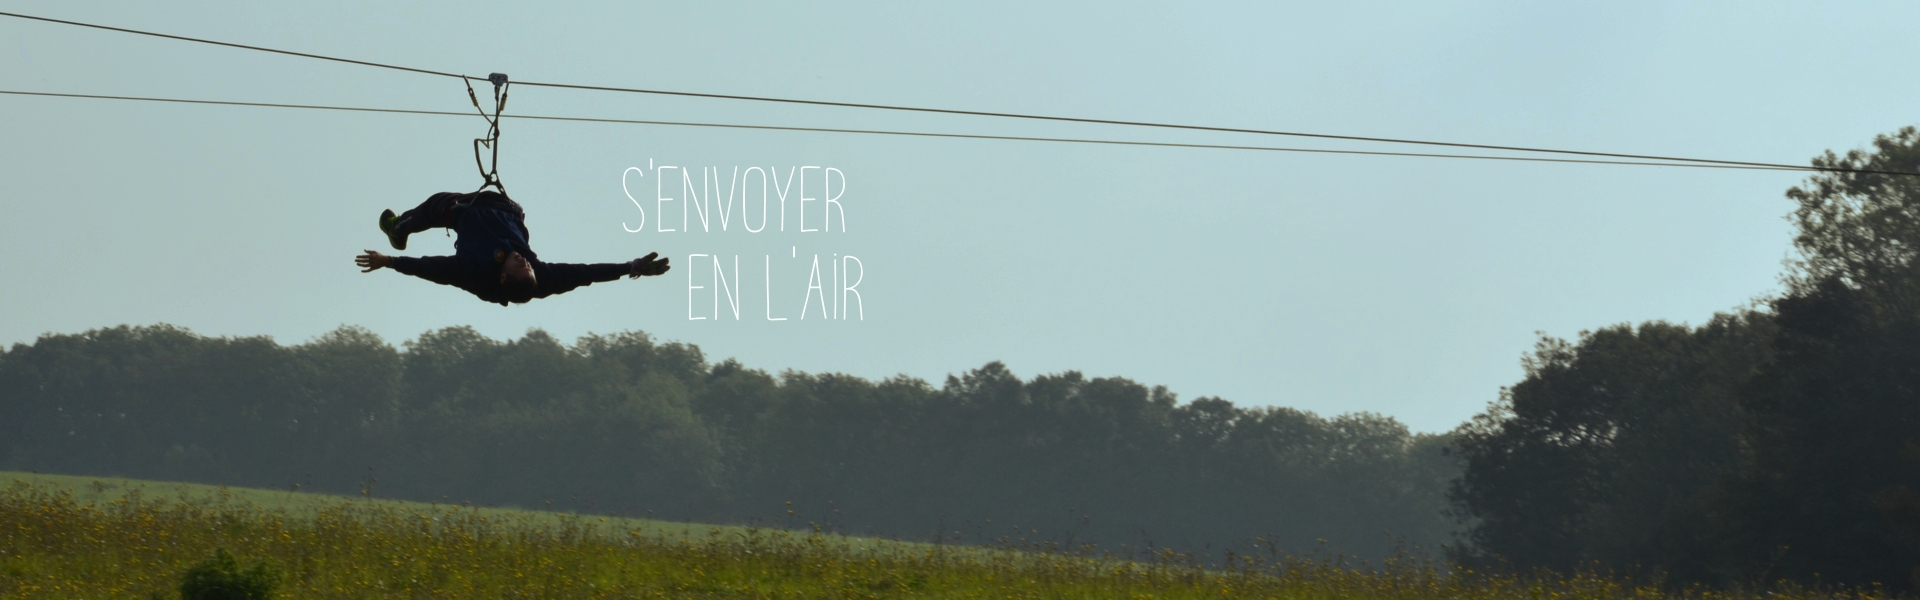 slider_005_senvoyer_en_lair